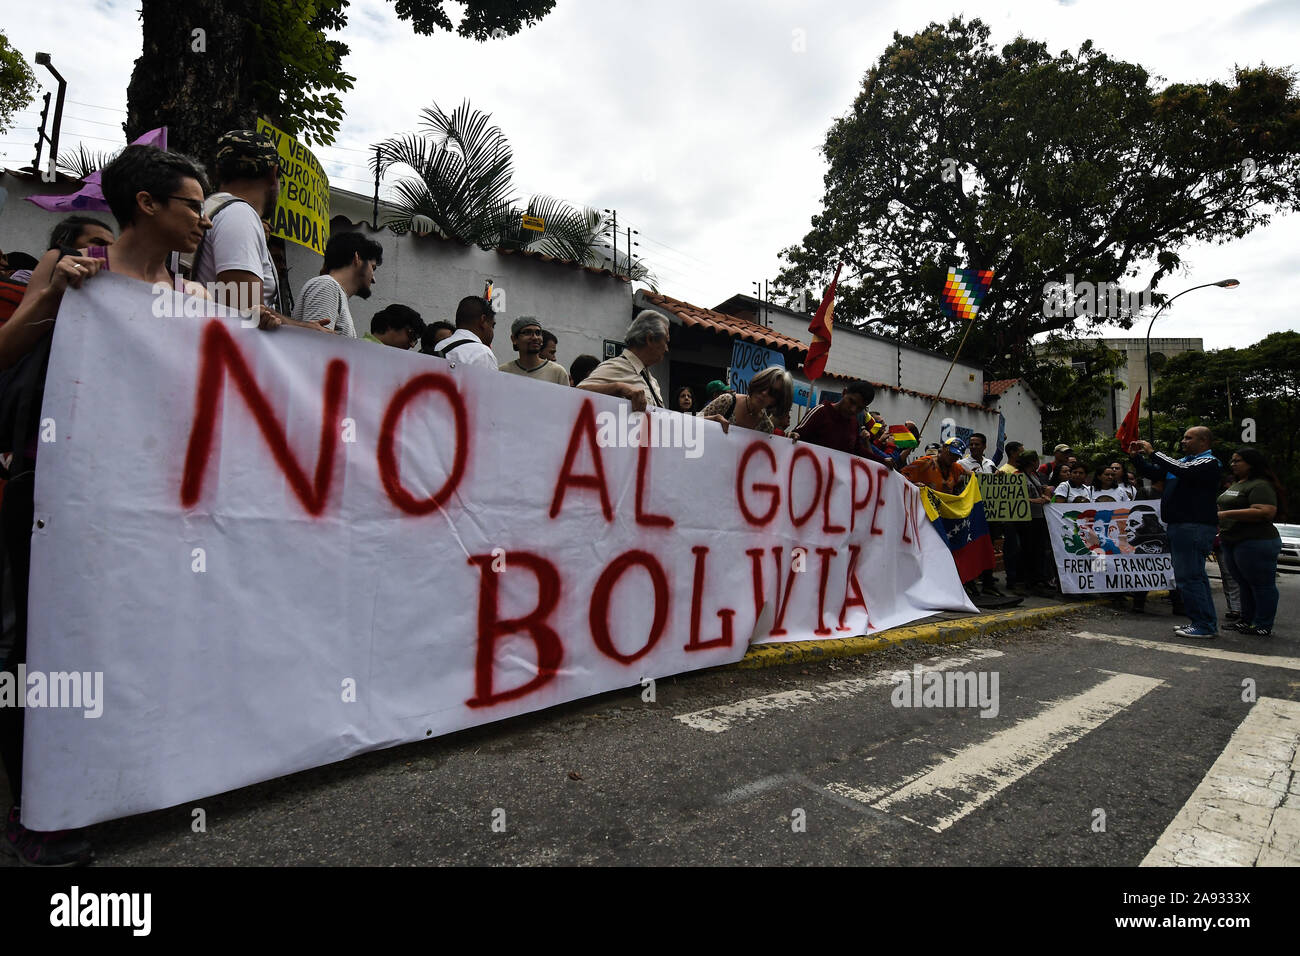 """A banner that reads """"Against the coup in Bolivia"""" during the protest.Supporters of social movements and Venezuelan communist youth protest in support of former president, Evo Morales in front of the Bolivian embassy. The president of the country resigned after strong protests against his re-election and for refusing to conduct an audit of votes. Stock Photo"""